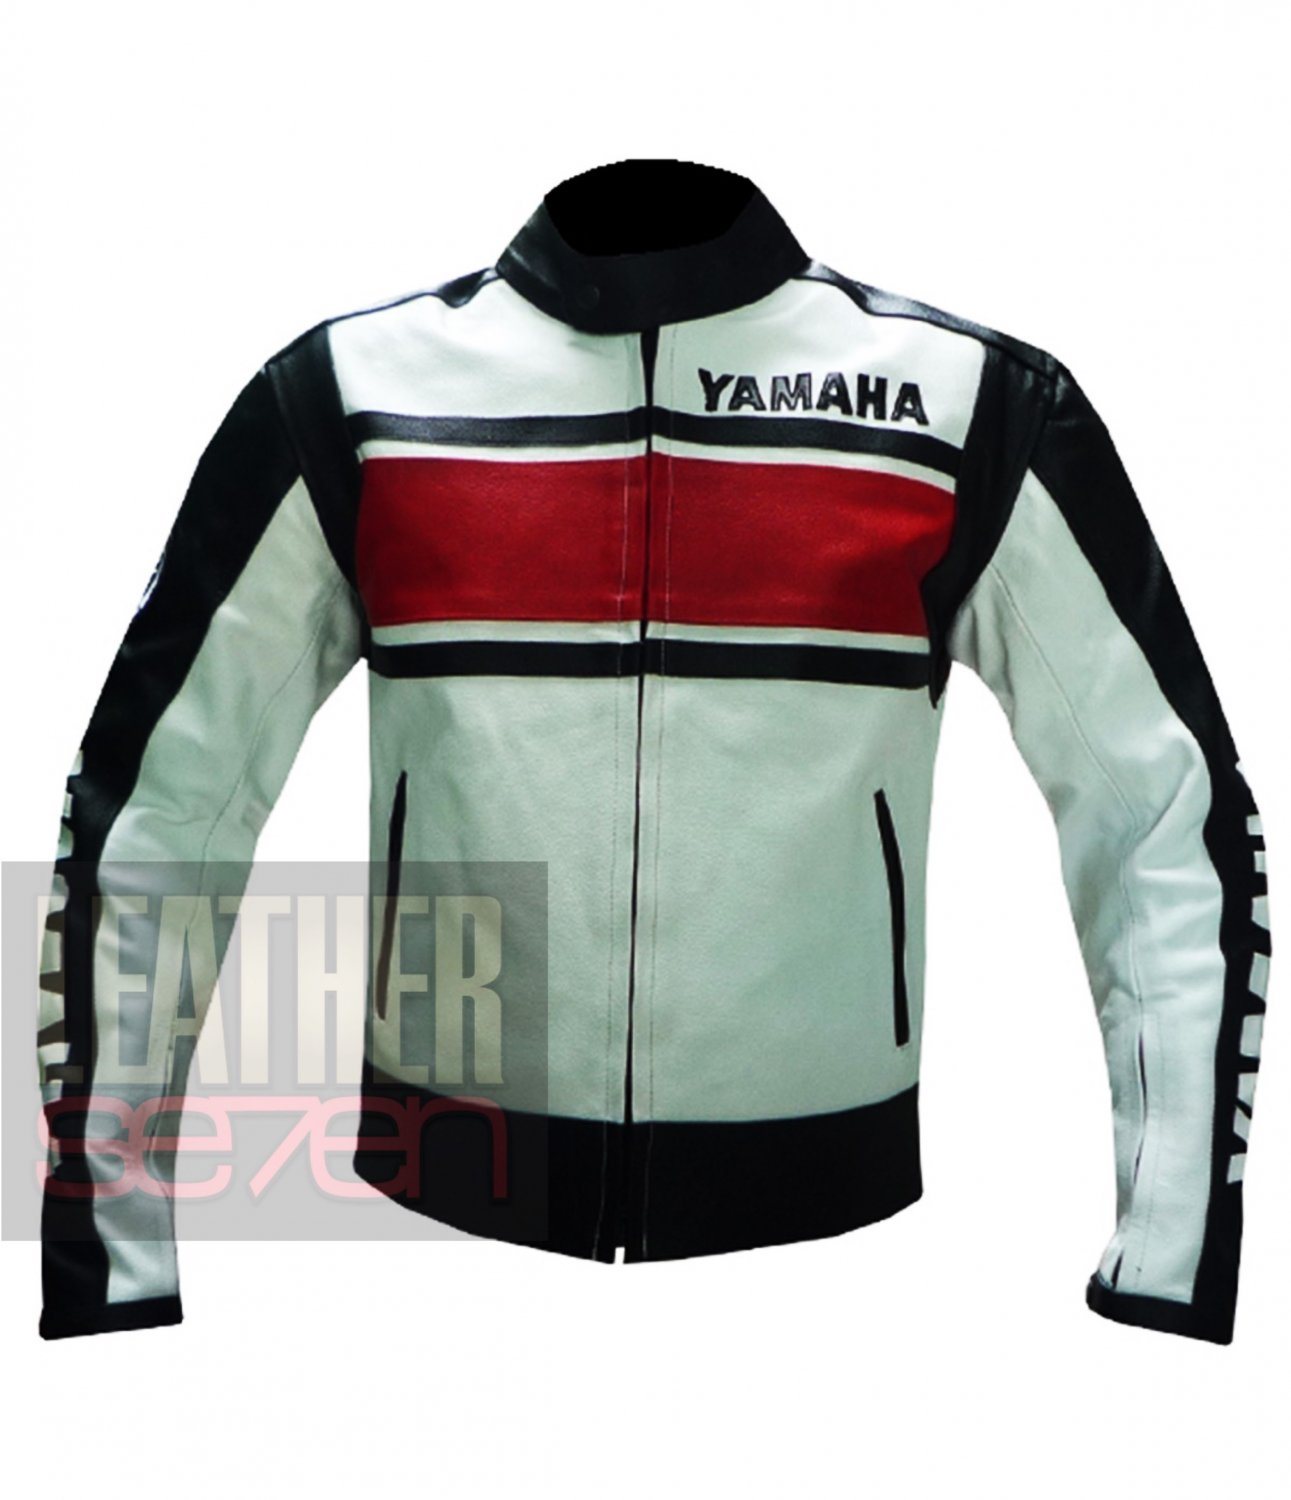 Pure Cowhide Leather Racing Jacket Yamaha 5241 Red By Buttco Group For Bikers